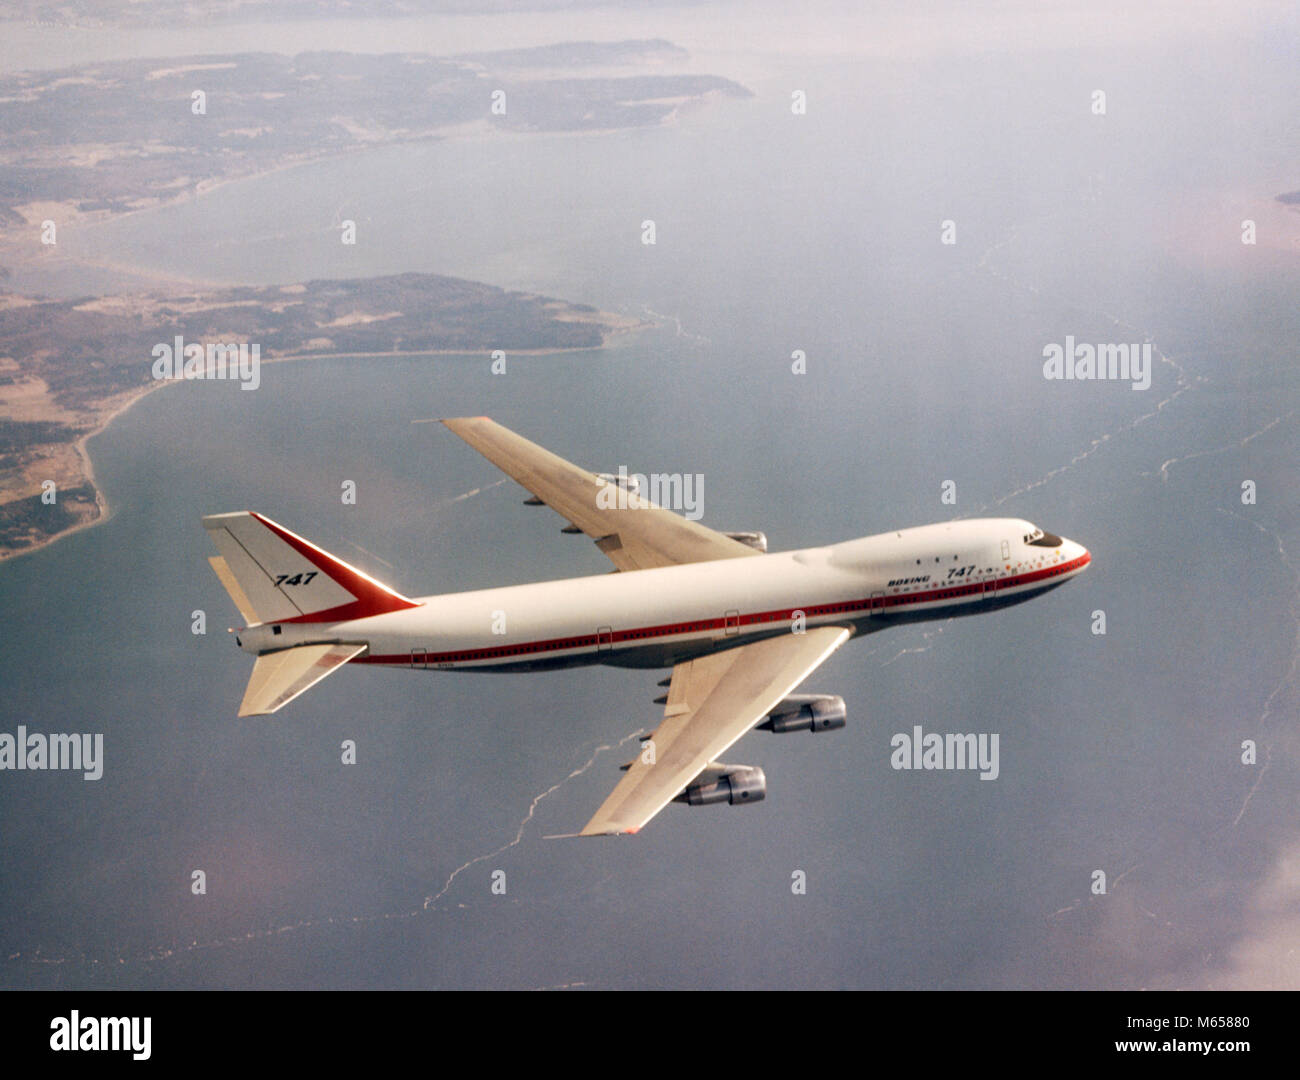 1970s BOEING 747 AIRPLANE OVER WATER TRANSPORTATION COMMERCIAL AVIATION AIR TRAVEL - ka4347 HAR001 HARS OLD FASHIONED - Stock Image